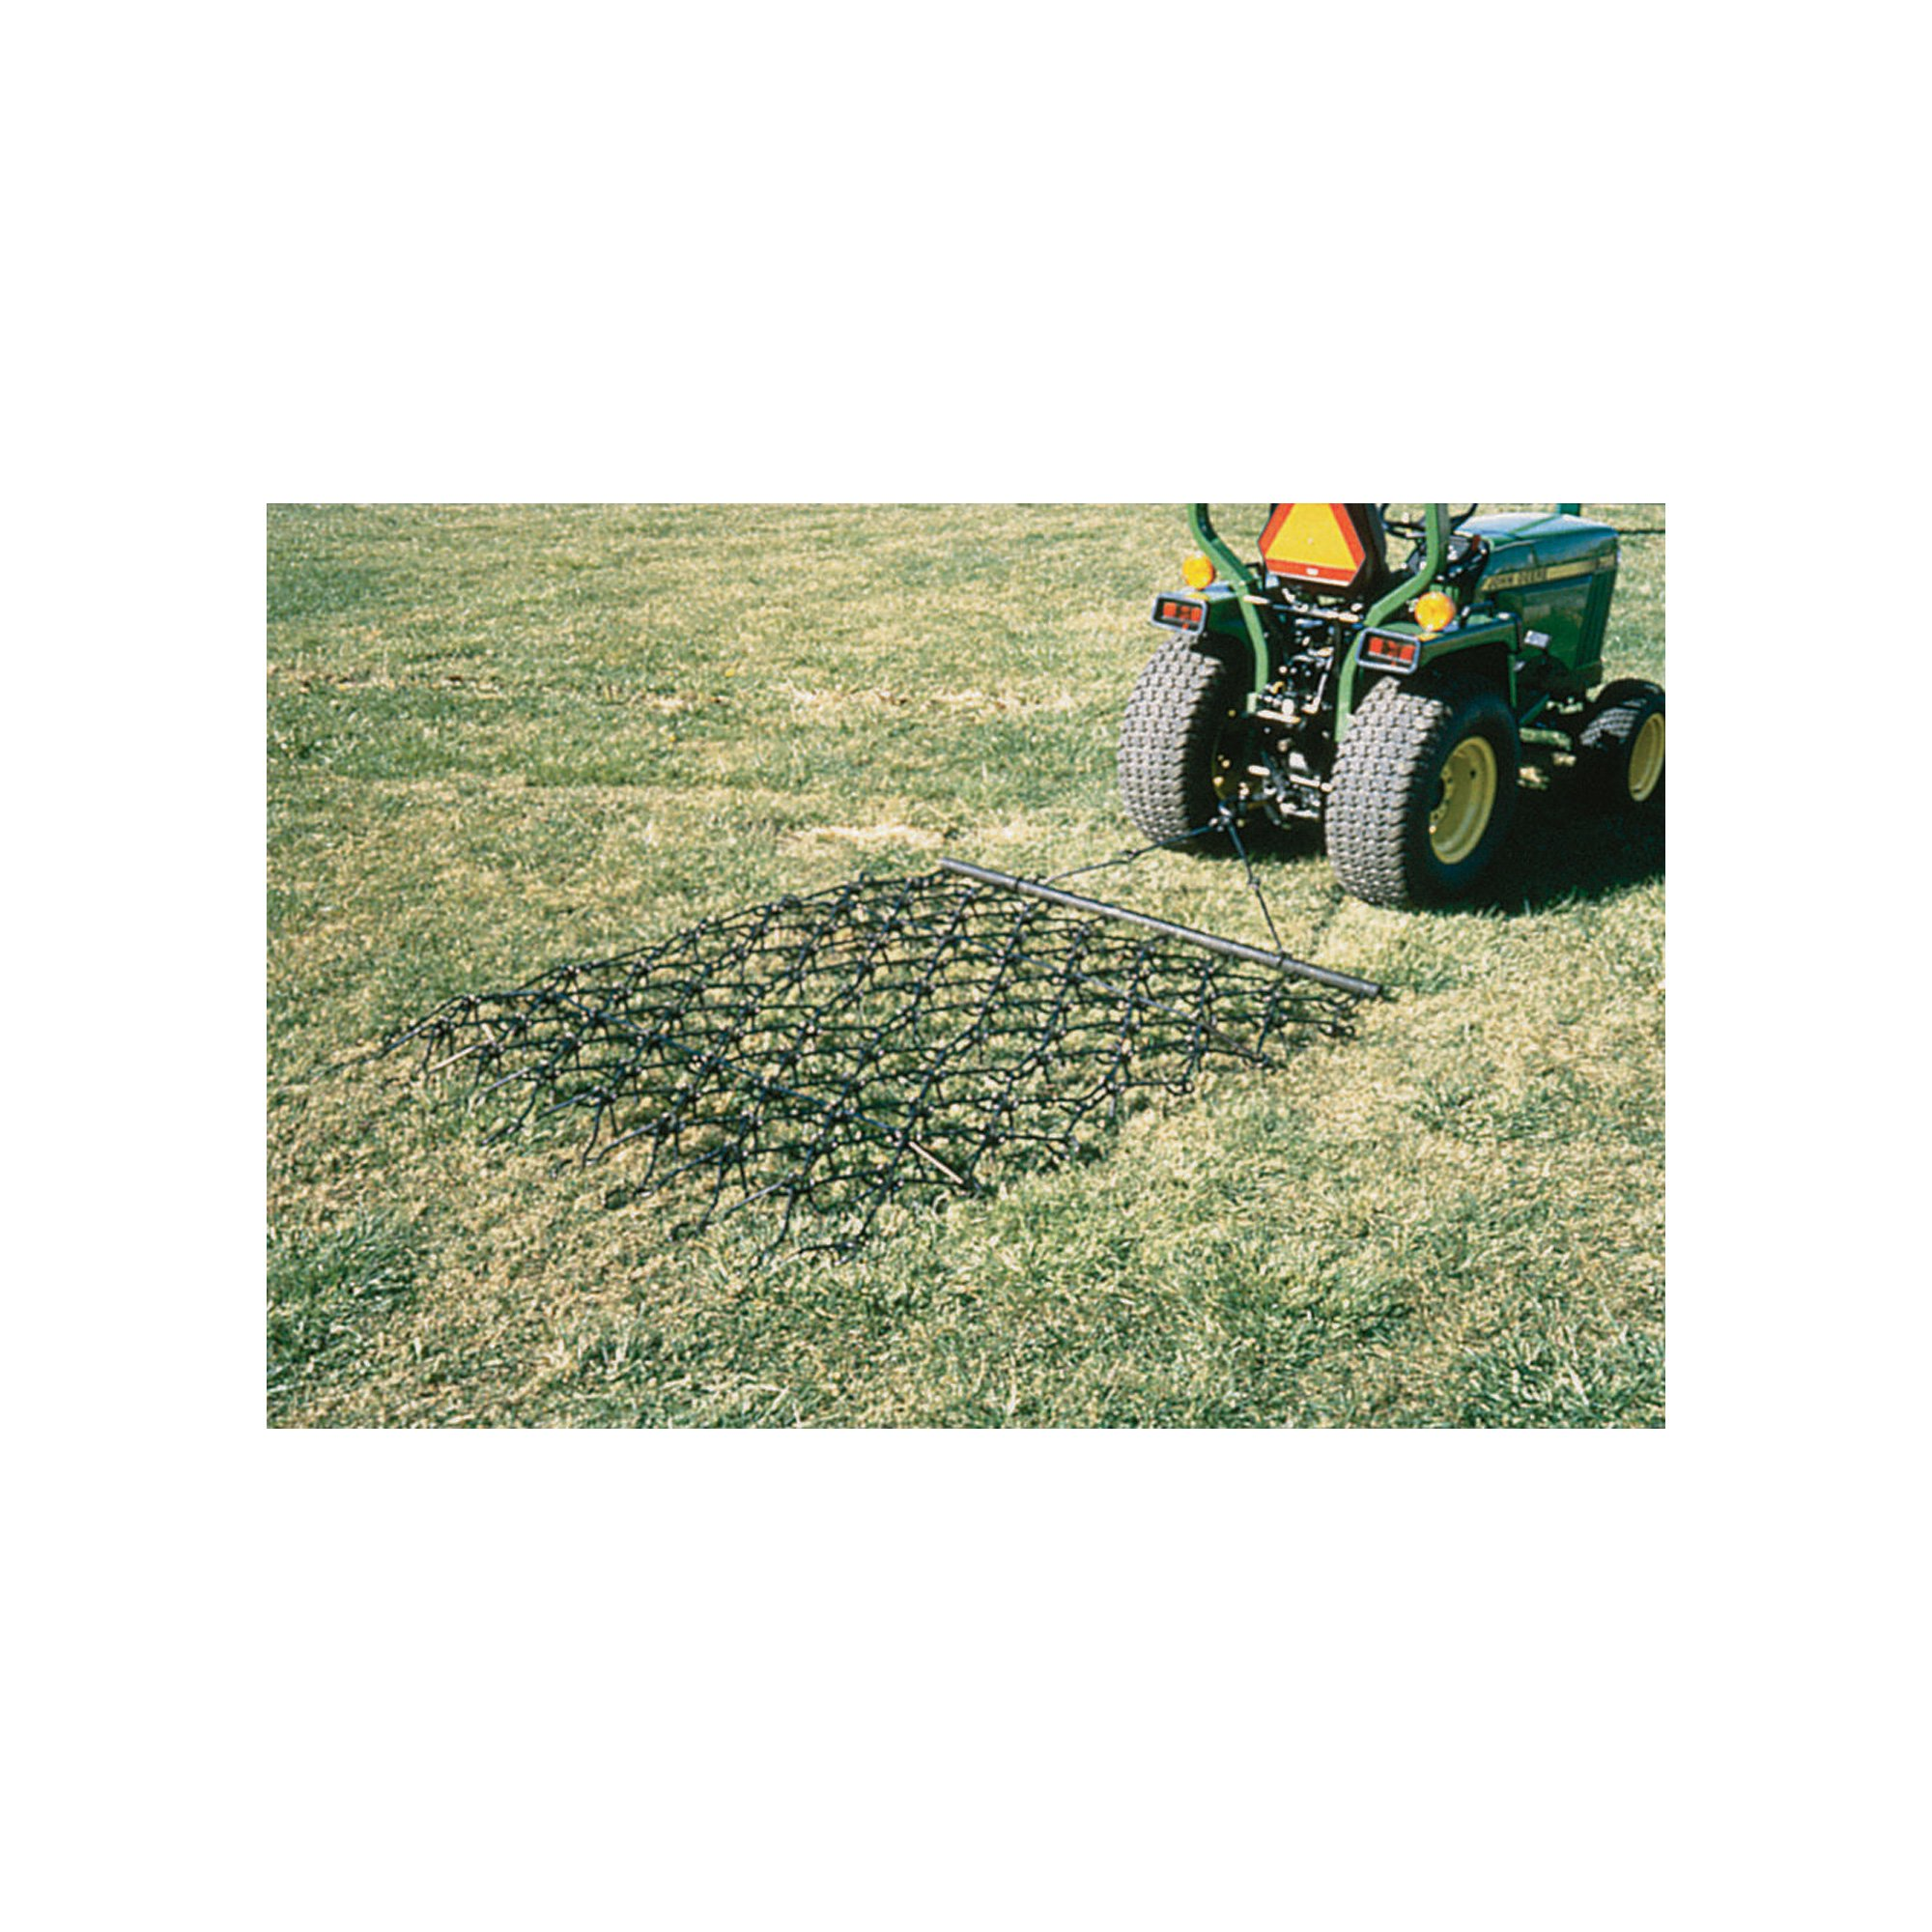 NorTrac Harrow Rake for Cleaning, Leveling Soil and Stimulating Growth - 8ft.W x 3 1/2ft.L